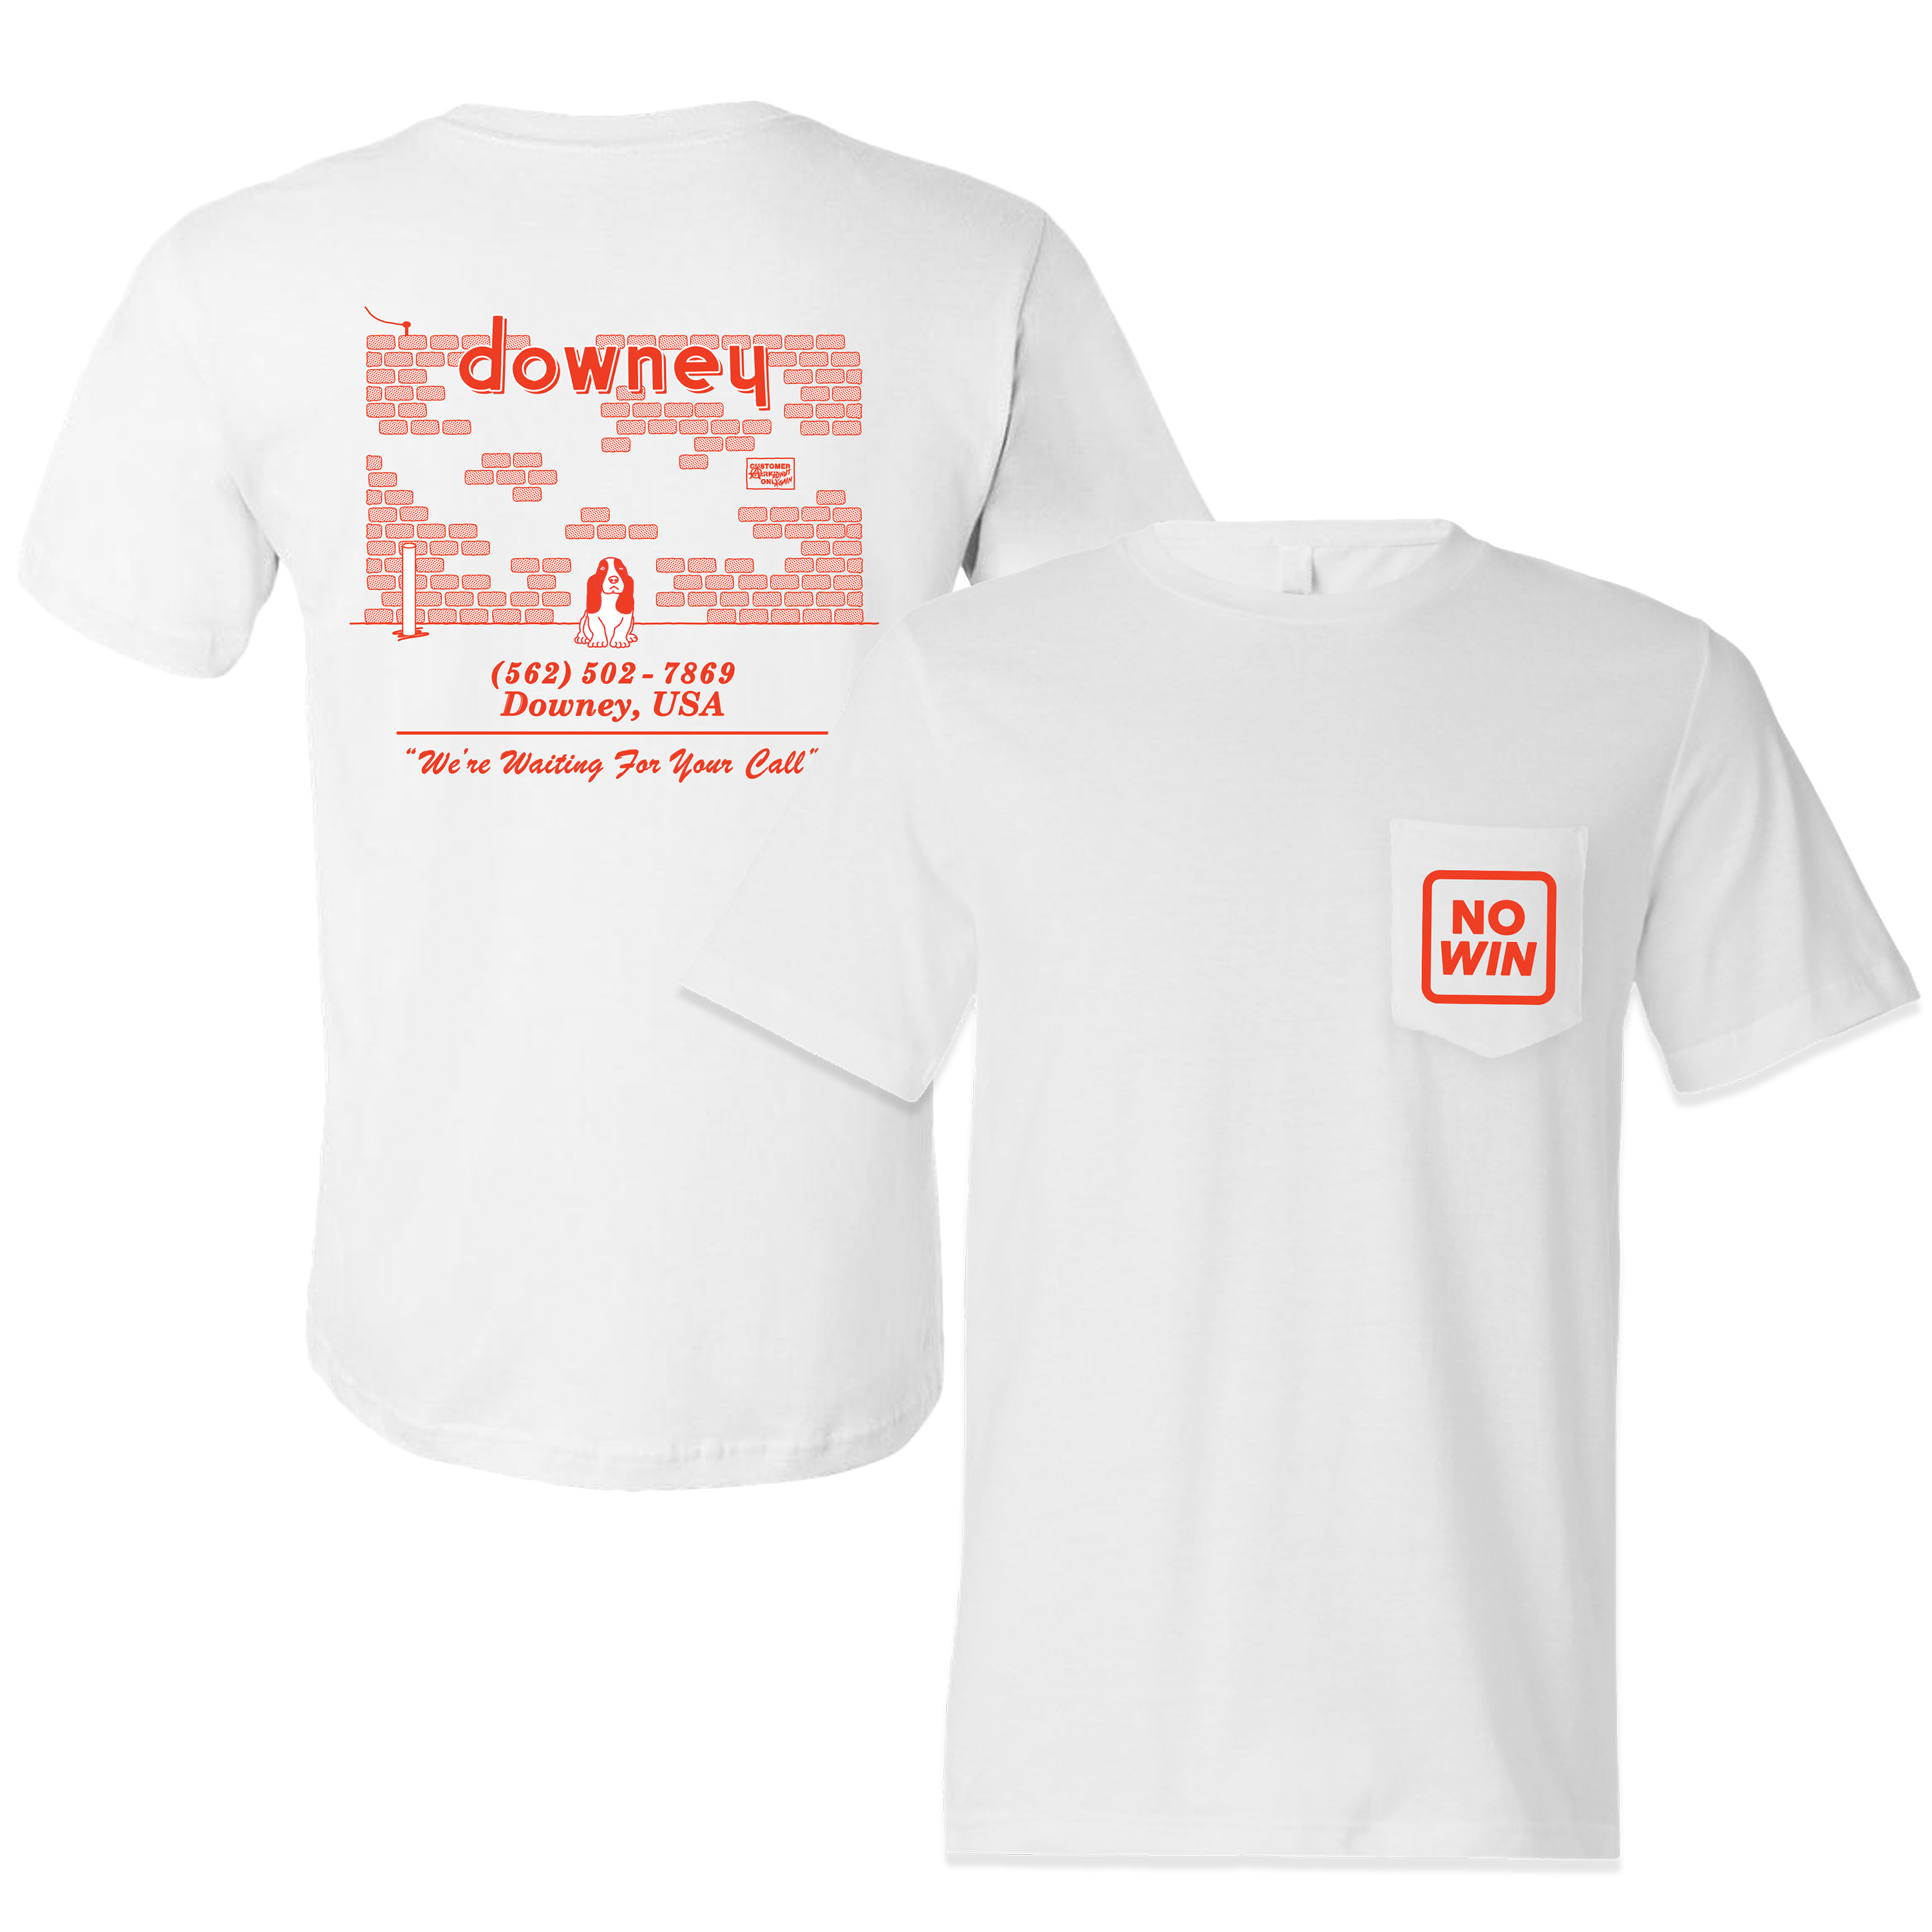 NO WIN - We're Waiting For Your Call White Pocket T-Shirt